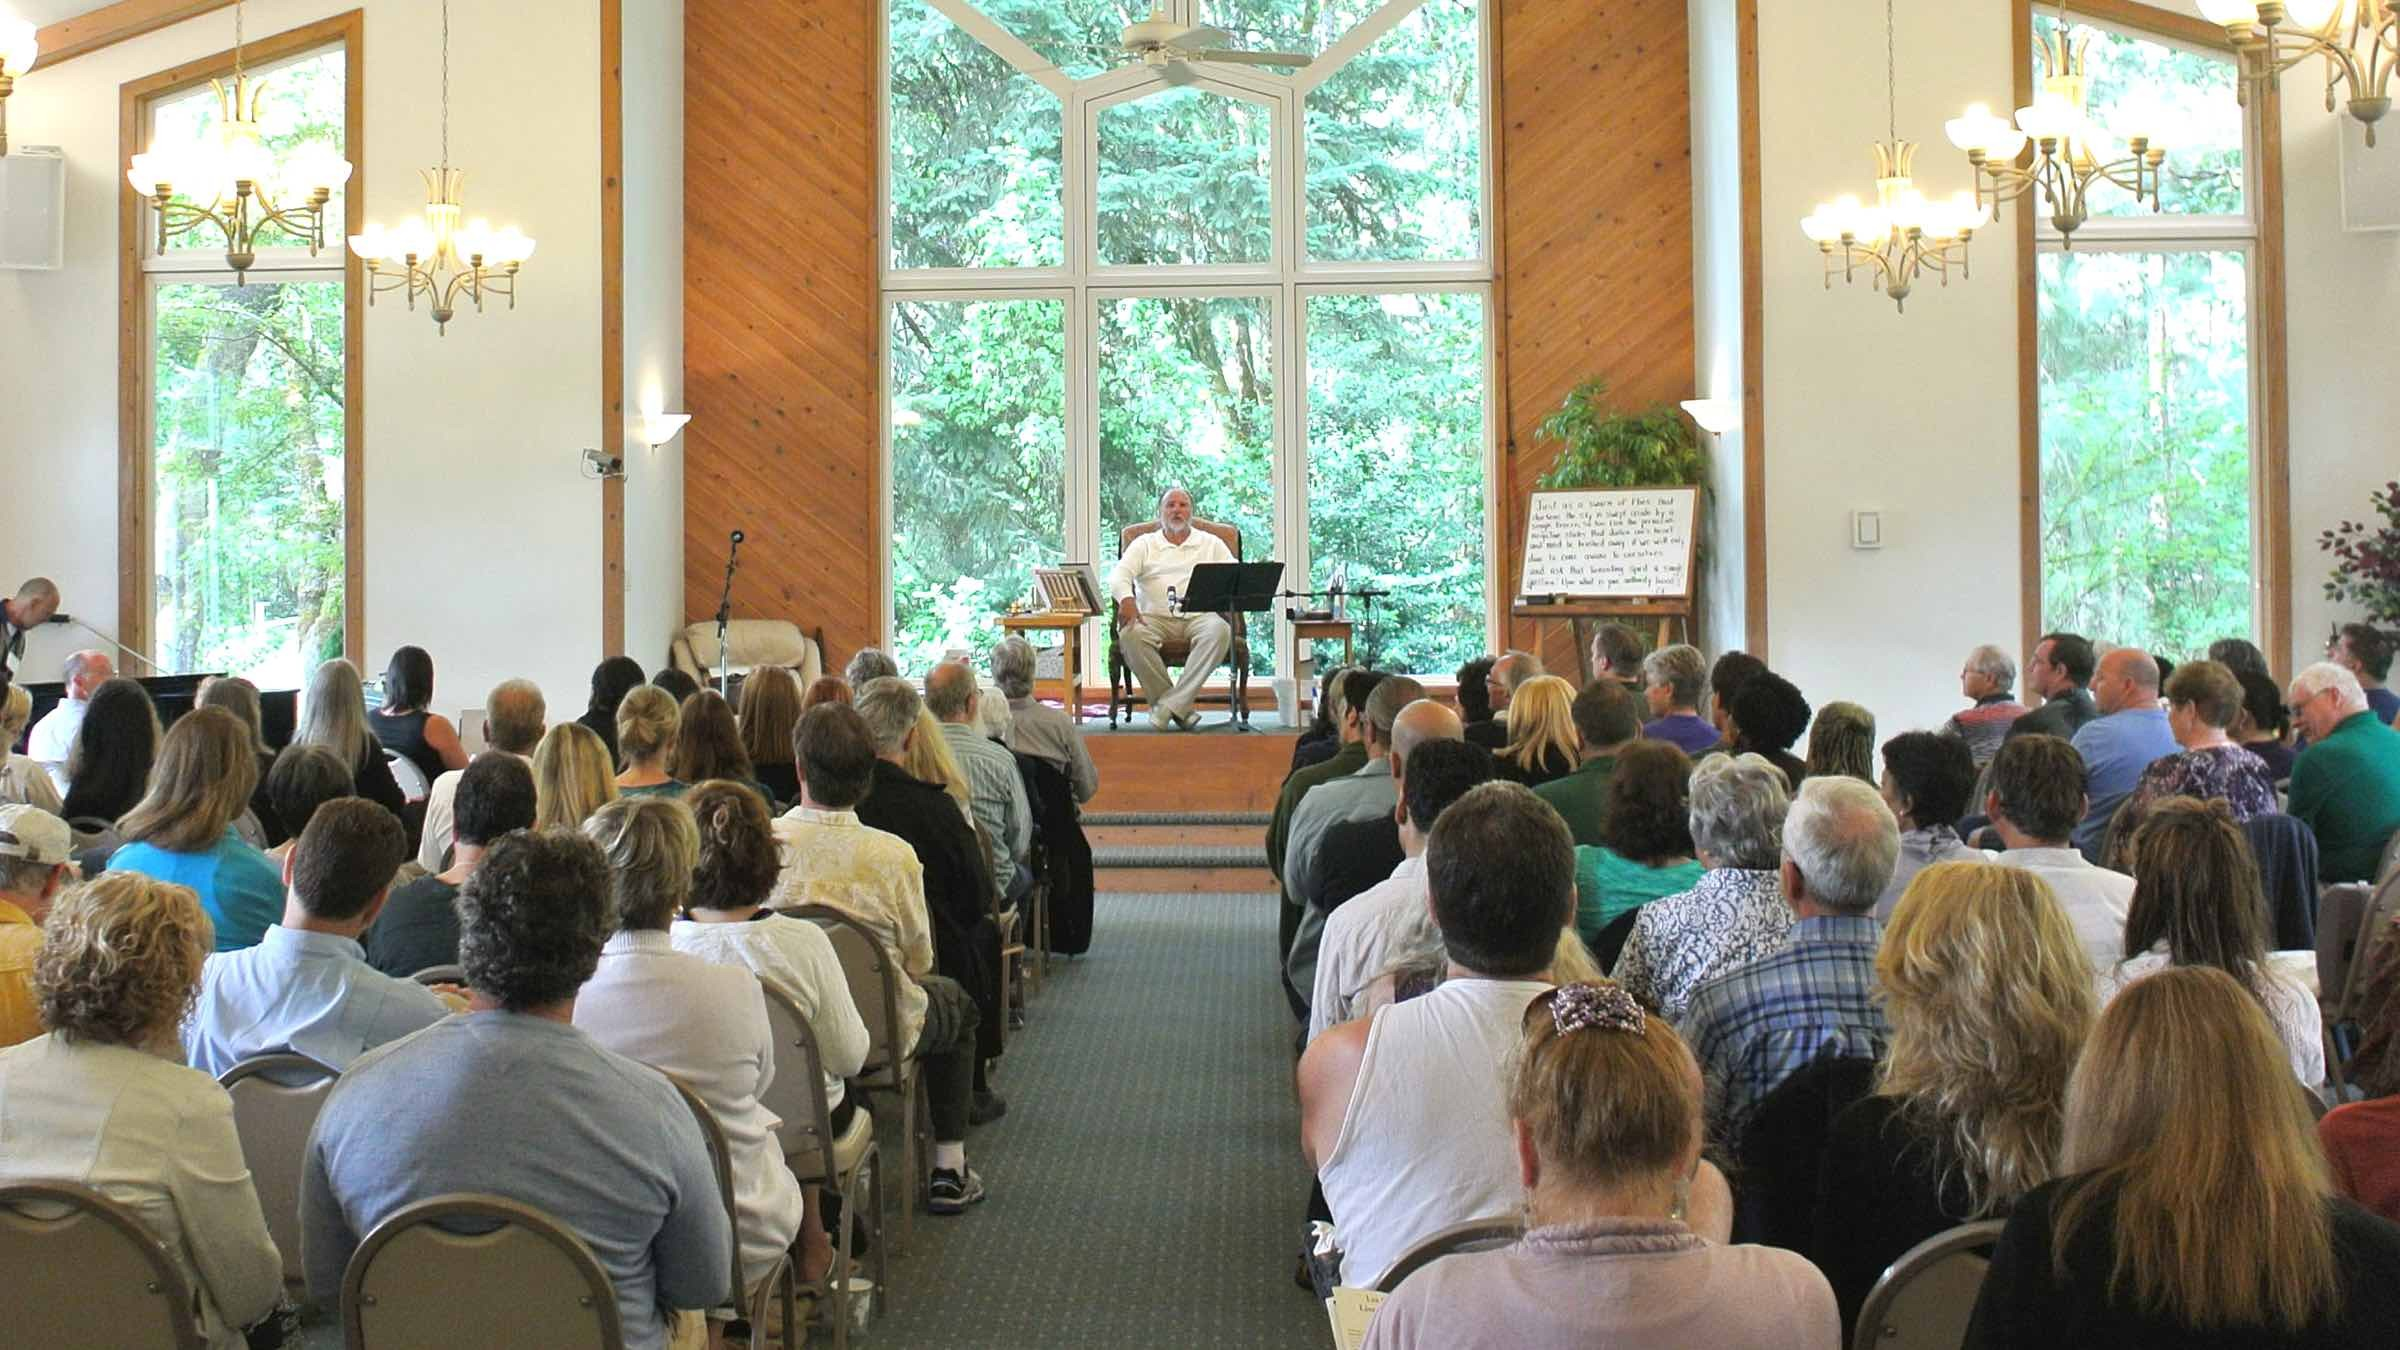 Start in the Right Place and Watch All Anxious States Disappear